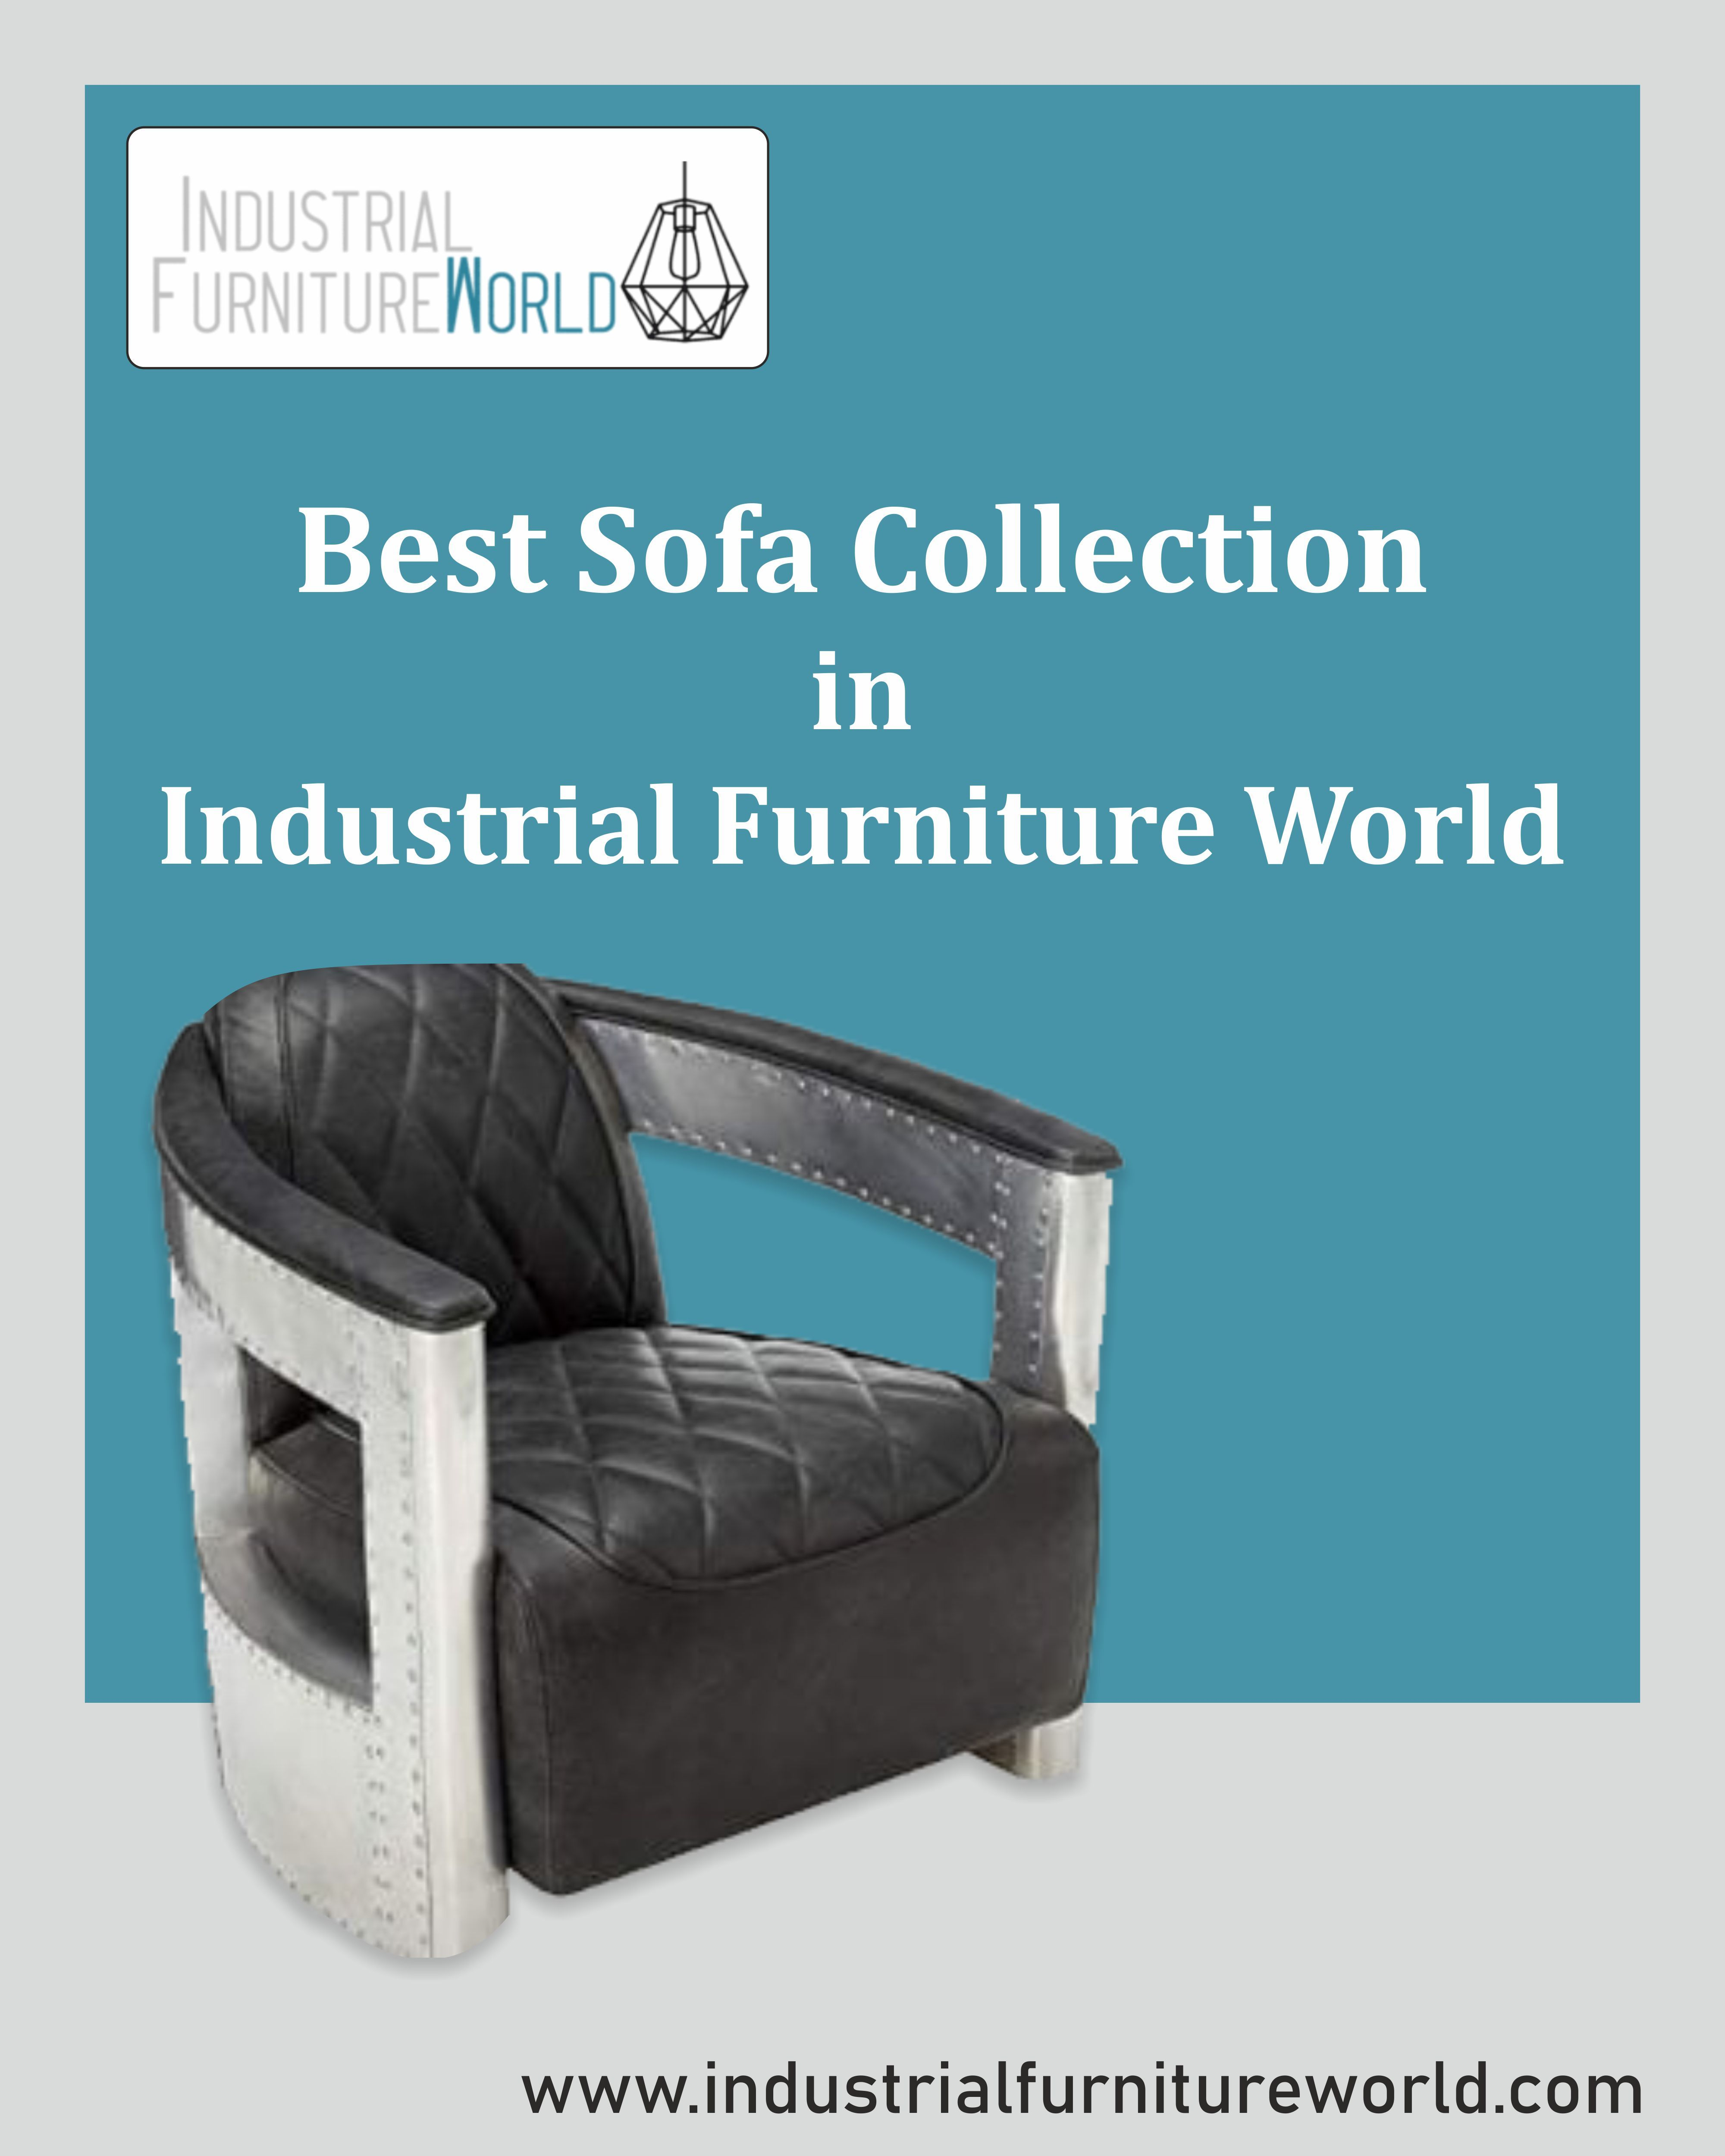 """we enjoy generating works of art, which serve to enhance the aesthetic richness and value of daily life. That is, my art furniture creations are intended—for the most part—to be functional, yet deeply imbued with expressive content. Nearly all of my creations are """"one-of-a-kind"""" pieces, or Limited Editions.#sofa #sofaartis #sofabedinforma #sofaprinces #sofabranco #sofaexpo2017 #sofarfromslabs #sofainggris #furniture #furnituredesign #furniturejepara #furniturejakarta #furnituremurah"""